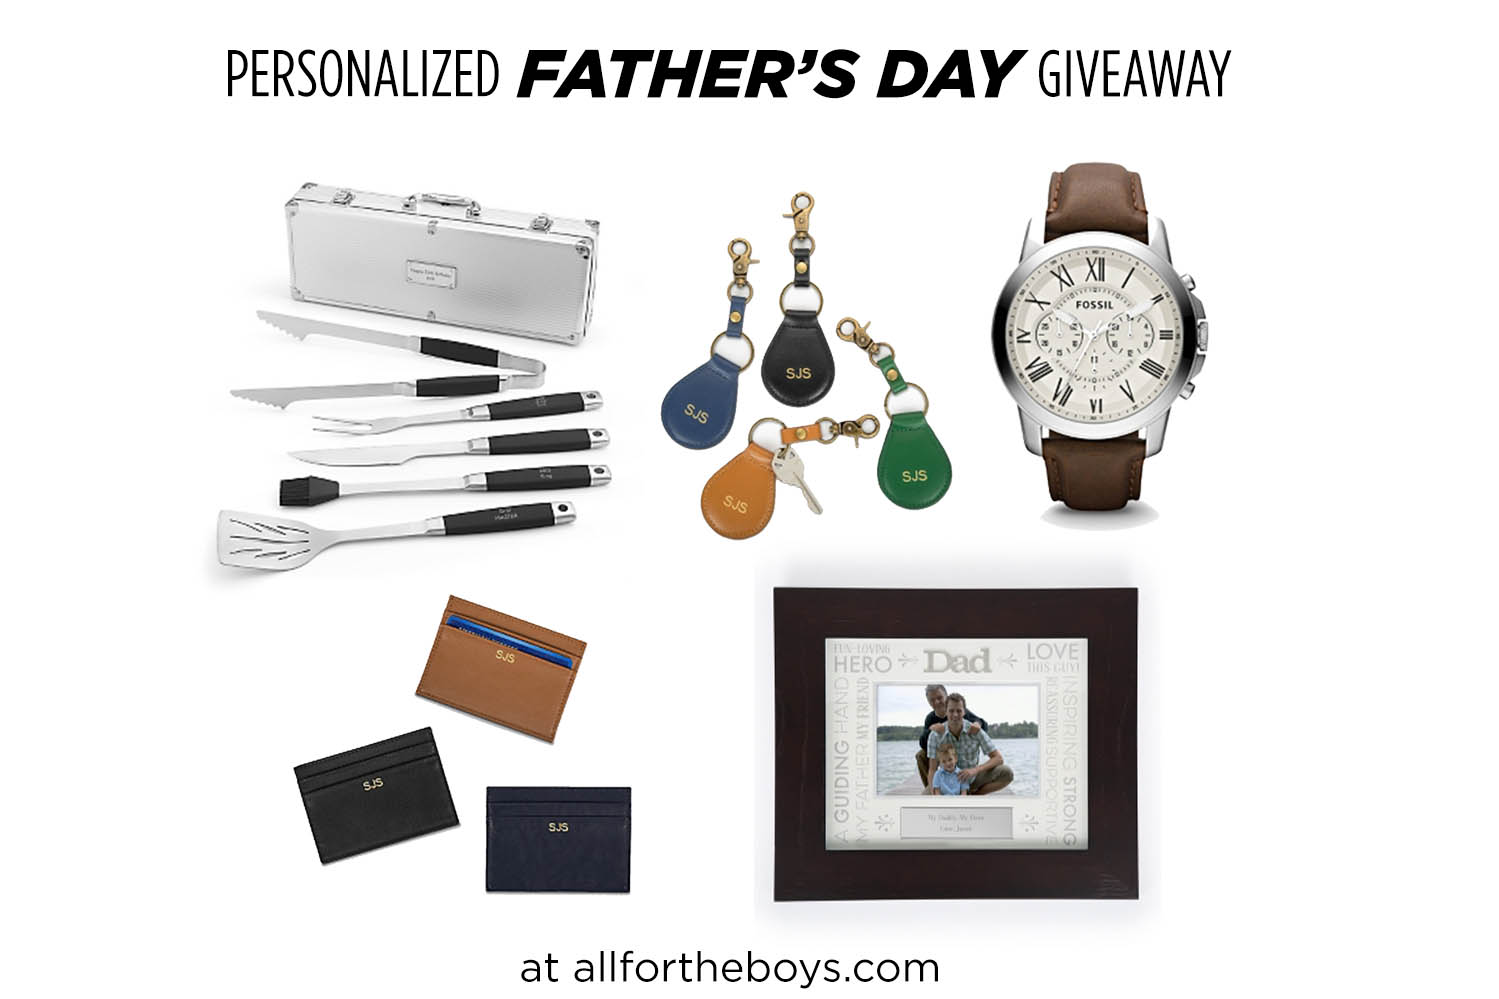 Father's Day Giveaway from Things Remembered and All for the Boys